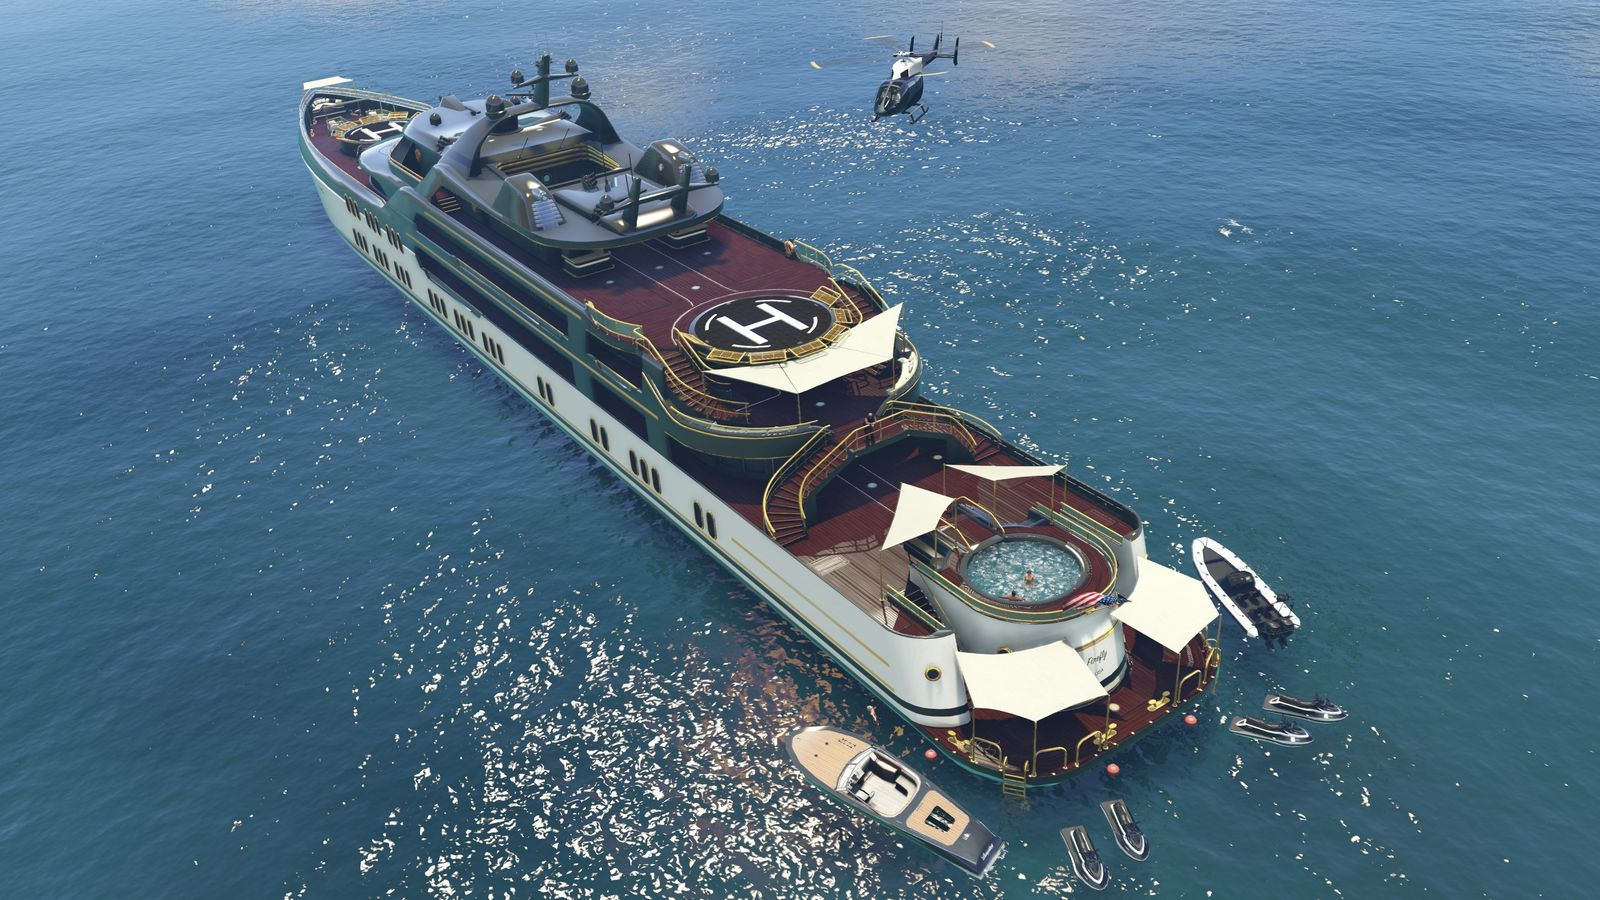 Gta Online S New Expansion Includes Luxury Yachts And Limos With Guns Luxury Yachts Gta Super Yachts